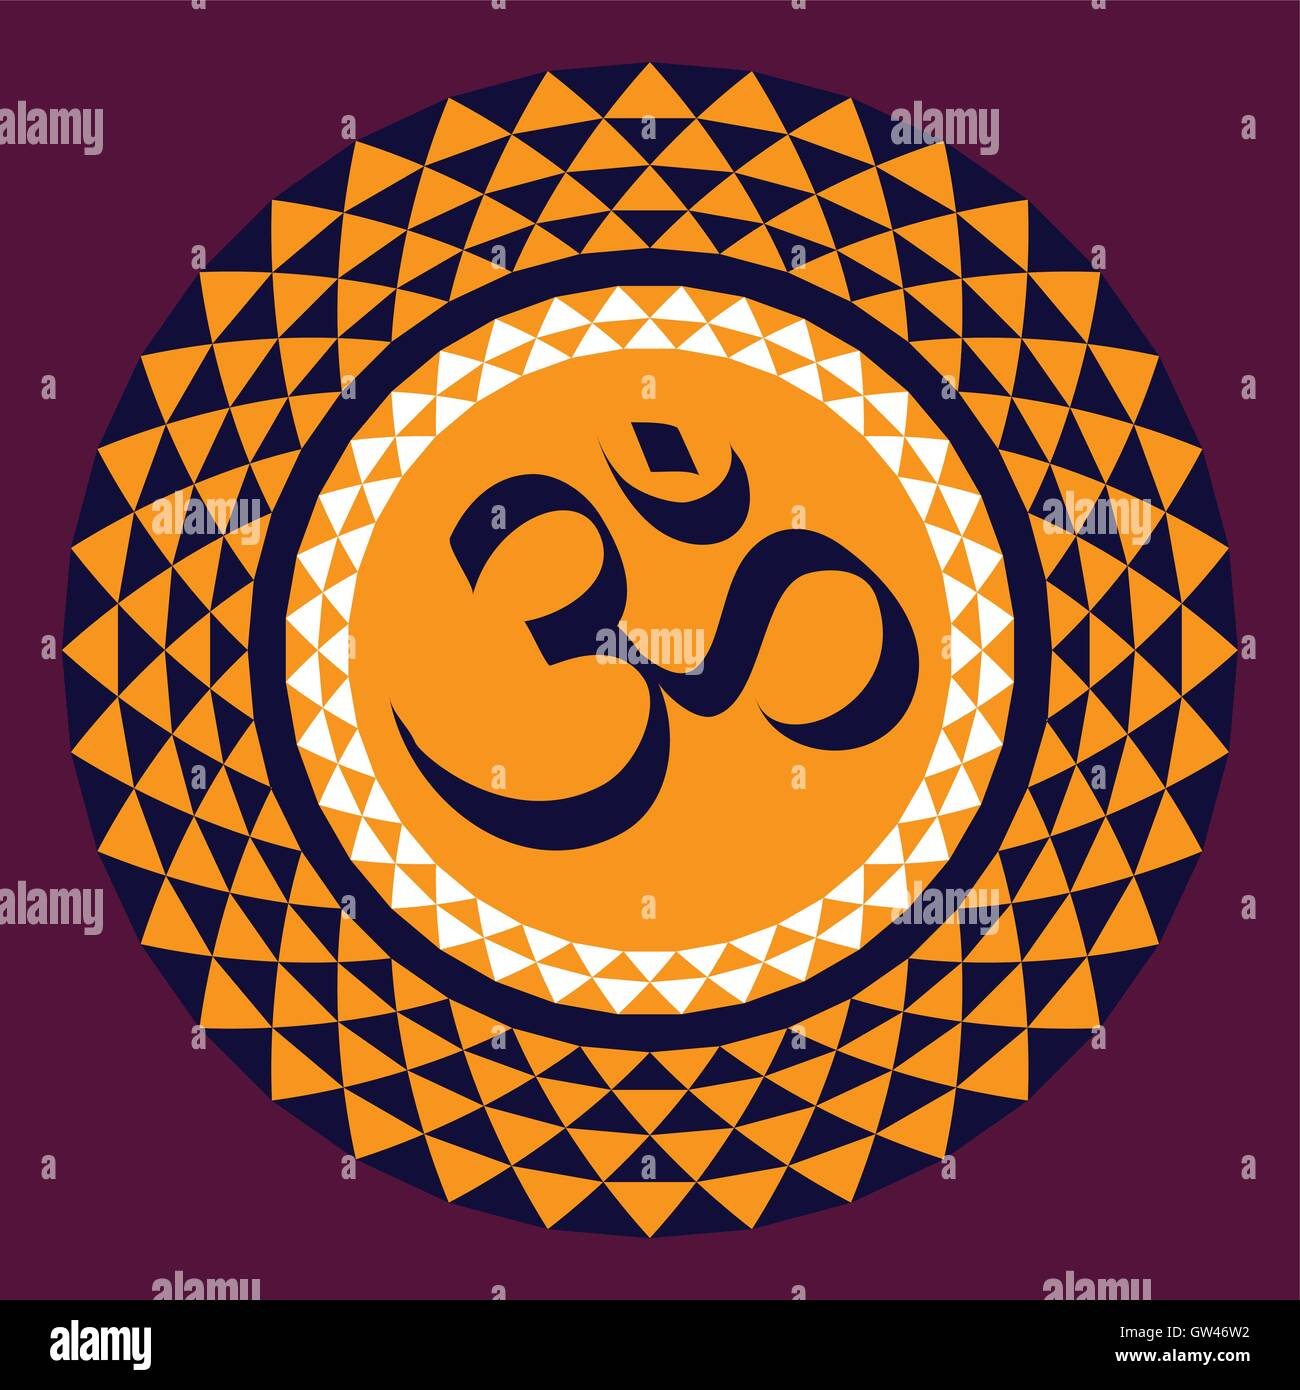 OM in the thousand petal lotus; a sacred symbol in the Hinduism and Buddhism. - Stock Vector